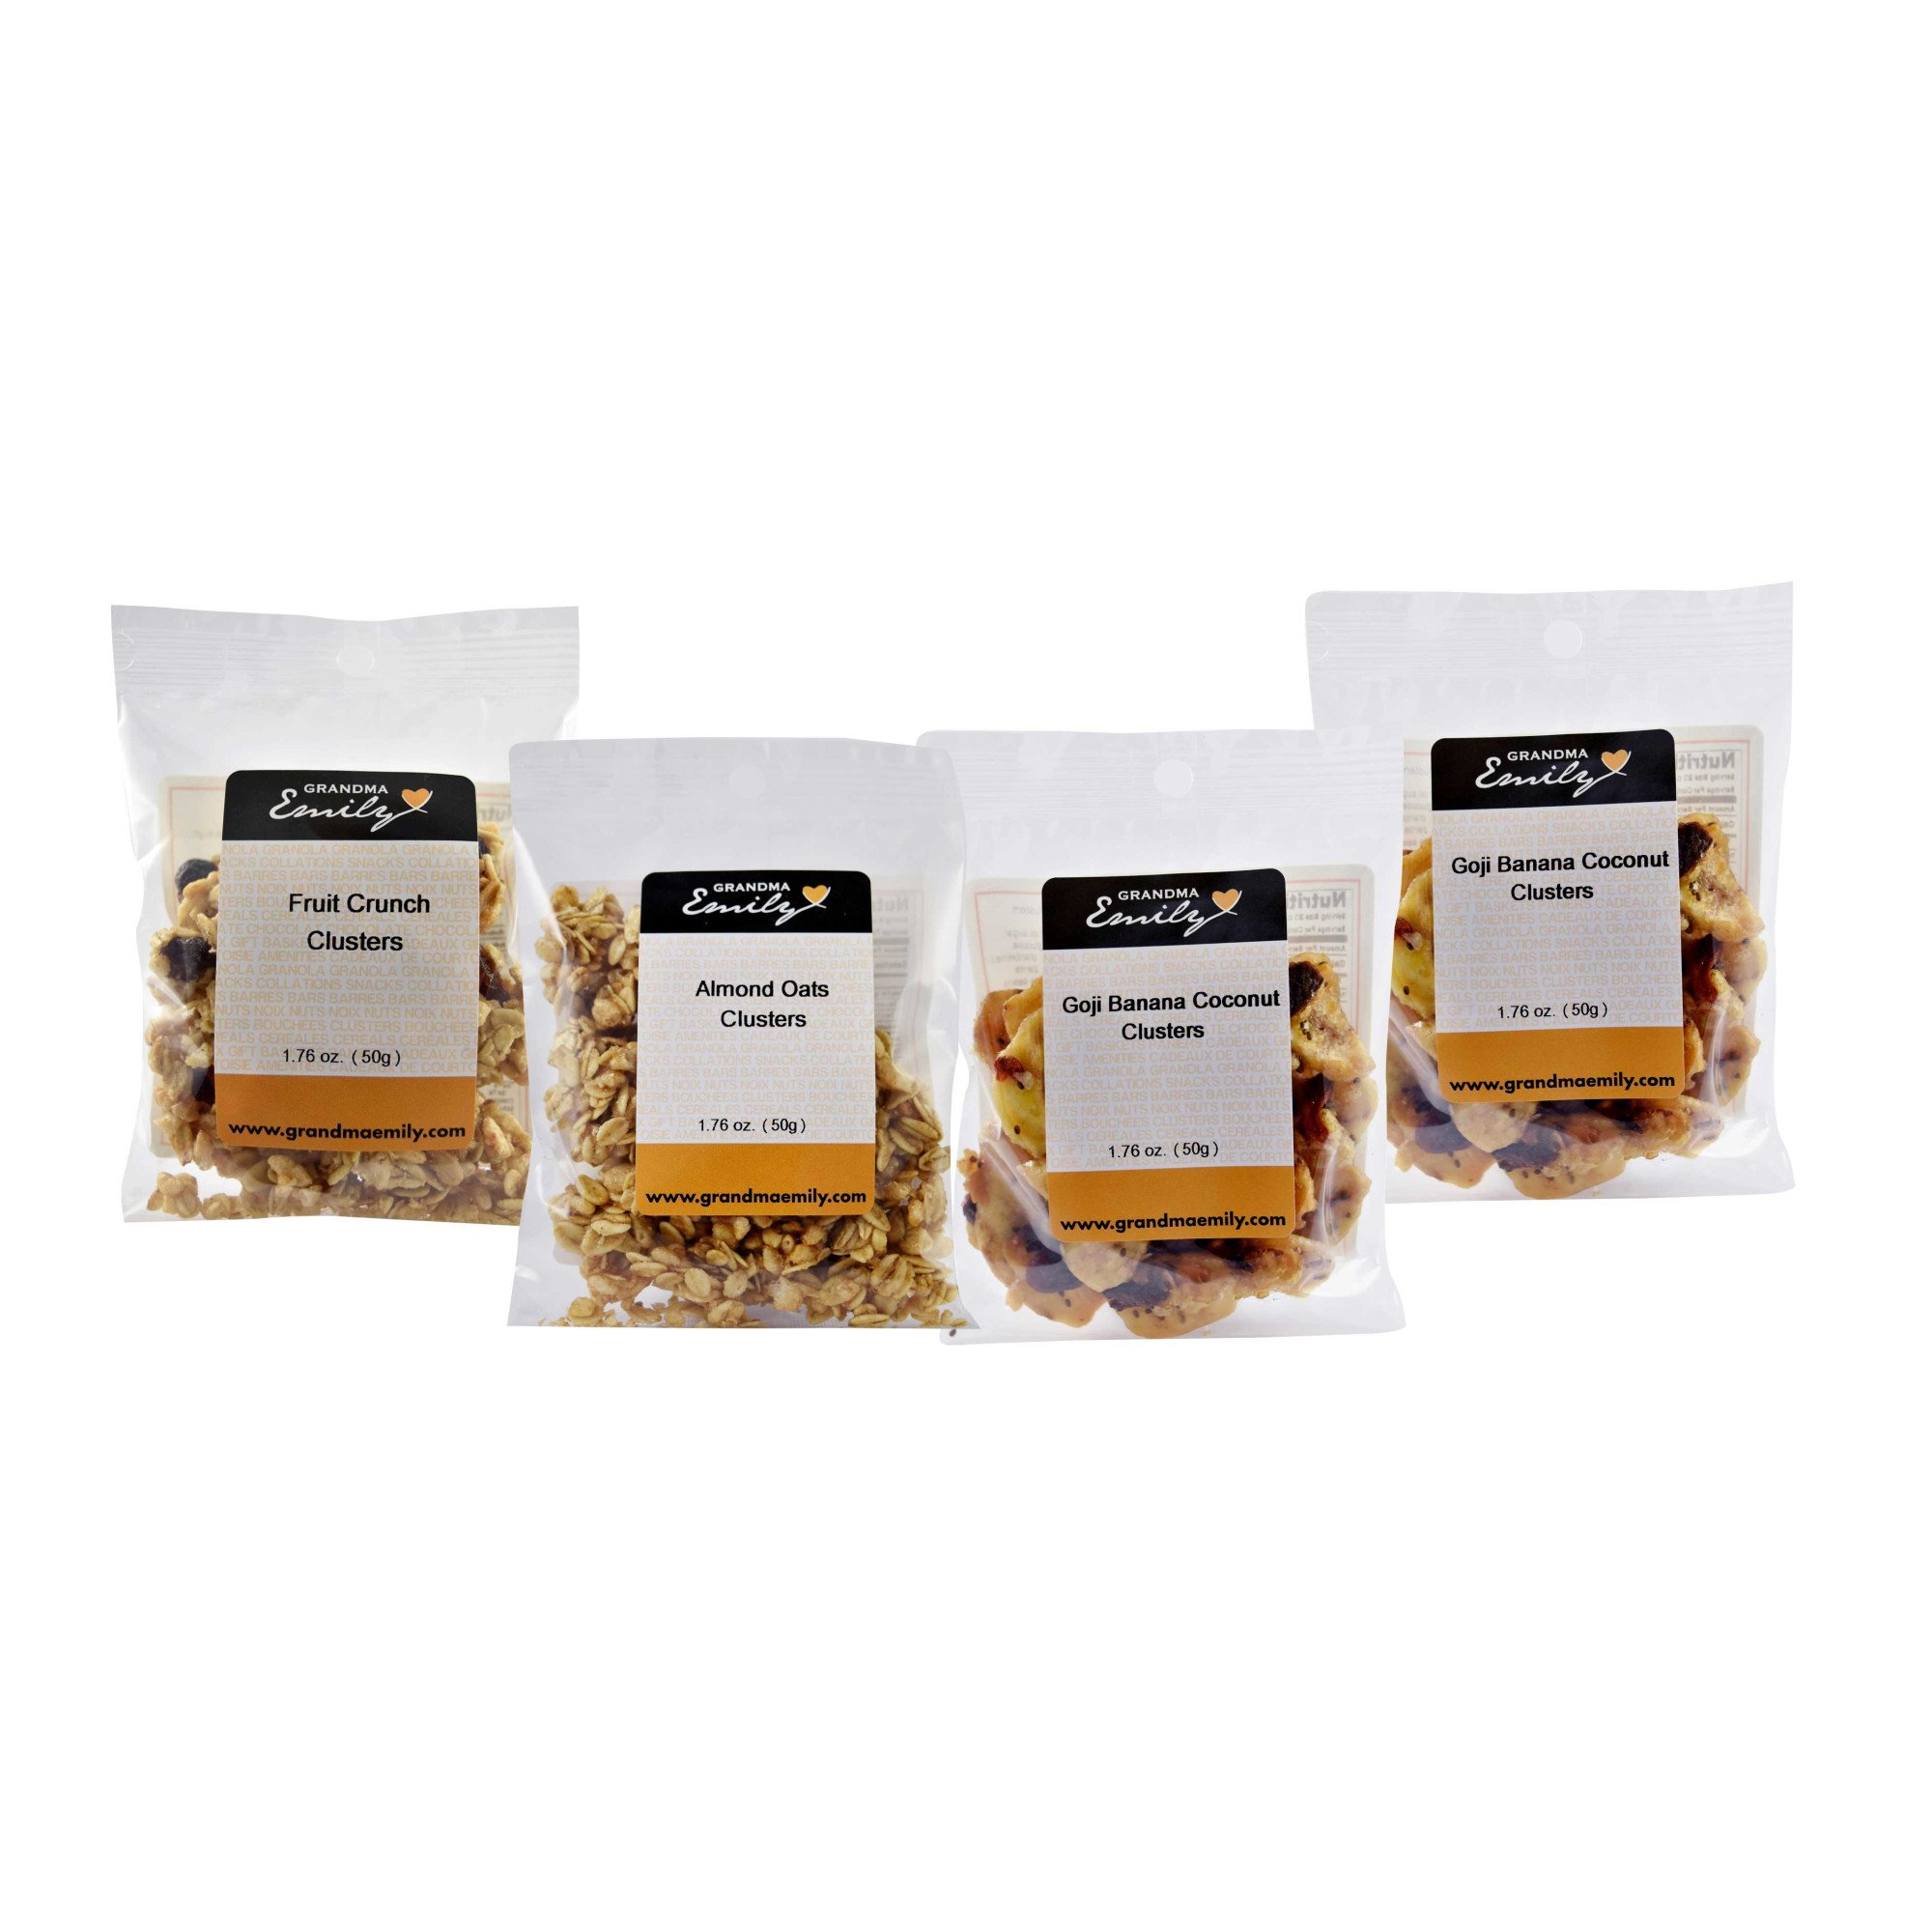 Grandma Emily Granola Clusters, (Made in CANADA), 12 Individually Packed Assorted Flavours 1.76 oz. (50g.) Delicious Healthy Snacks Packed With Crunchy Goodness. 100% Canadian Oats